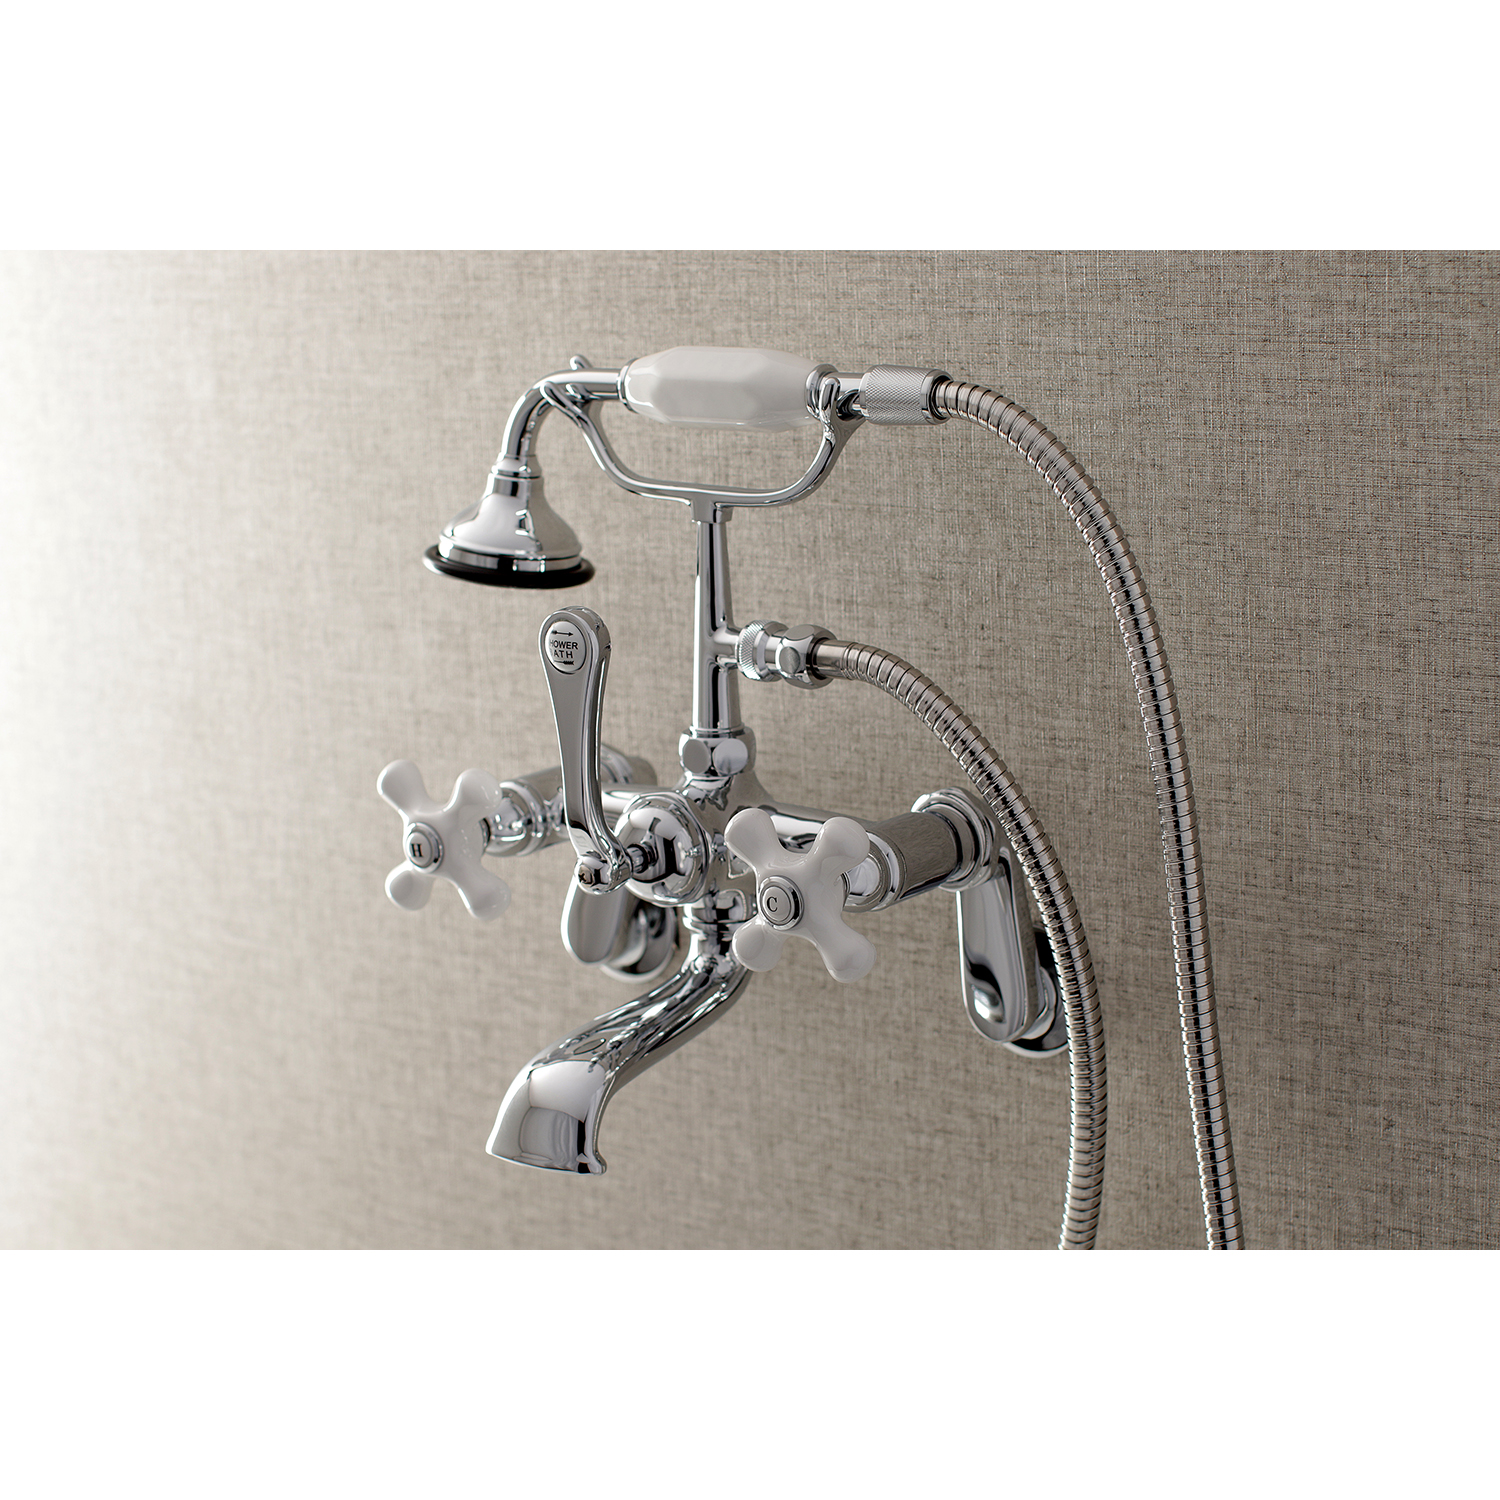 Aqua Vintage AE60T1 Wall Mount Clawfoot Tub Faucet with Hand Shower ...